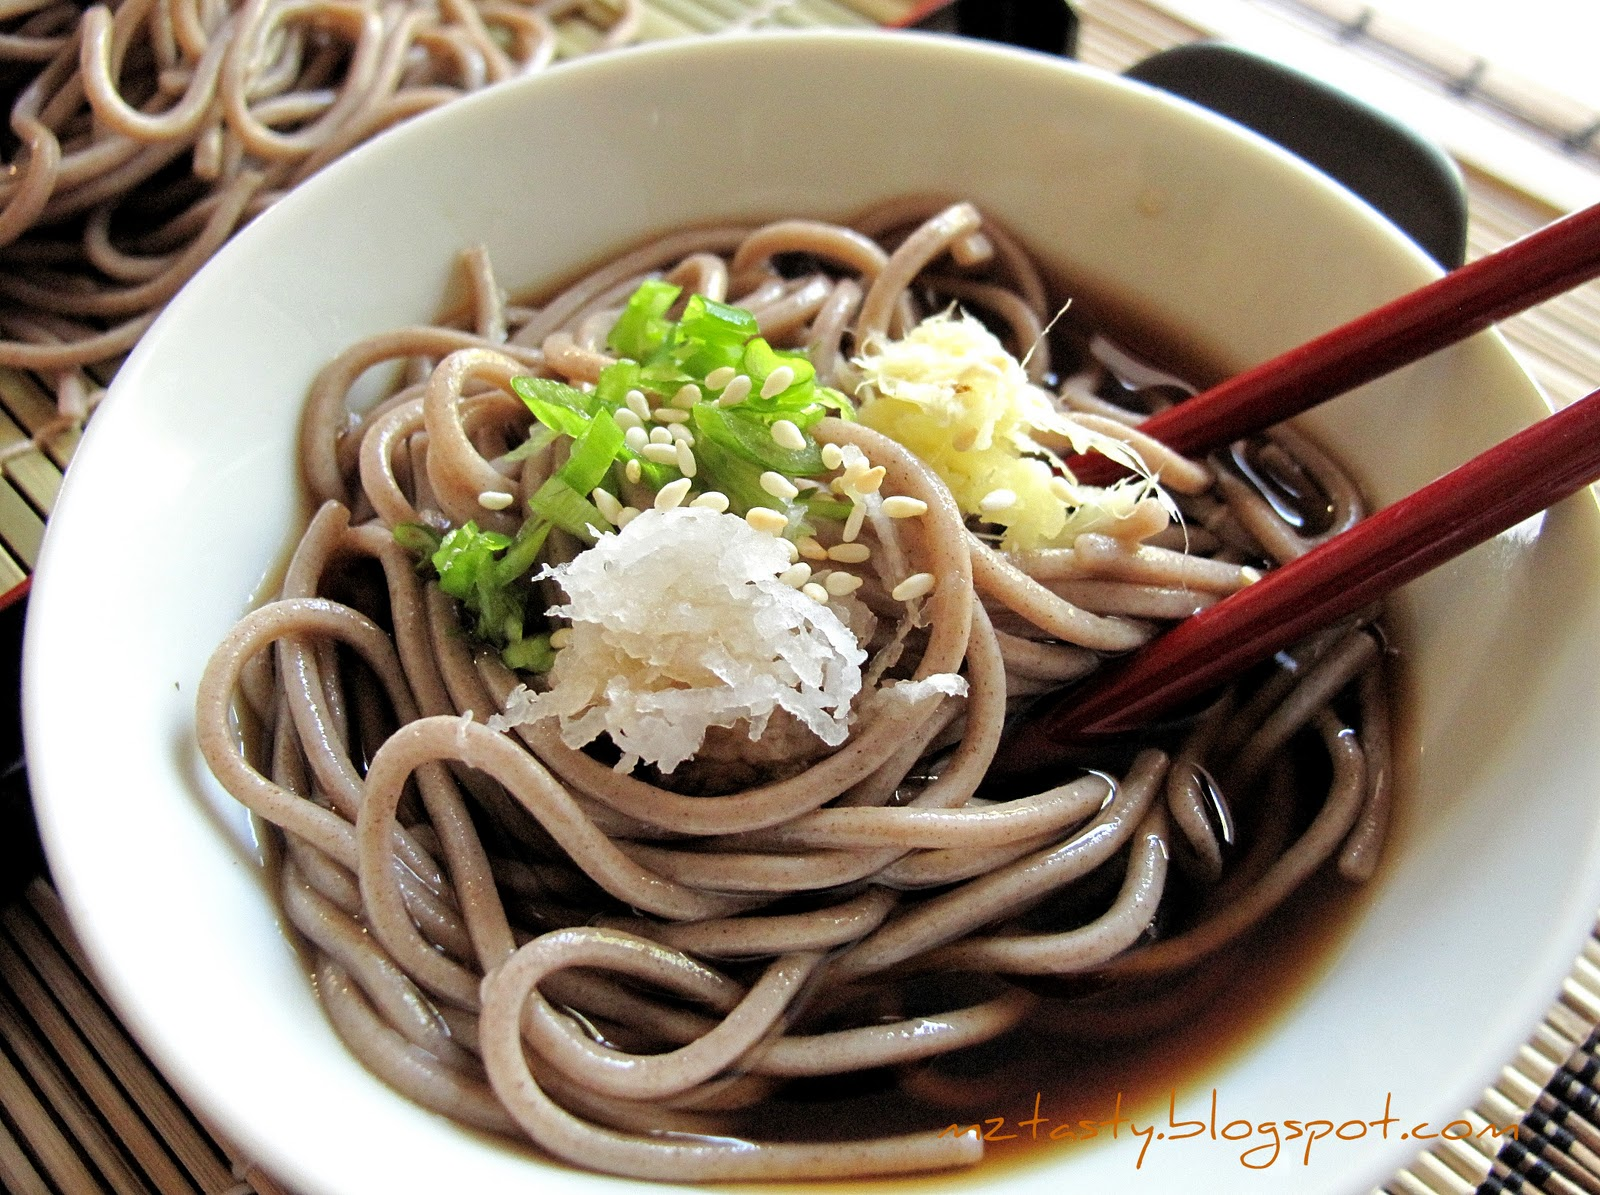 ... Kitchen, Savor The Flavor: Cold Soba Noodles/Buckwheat Noodles